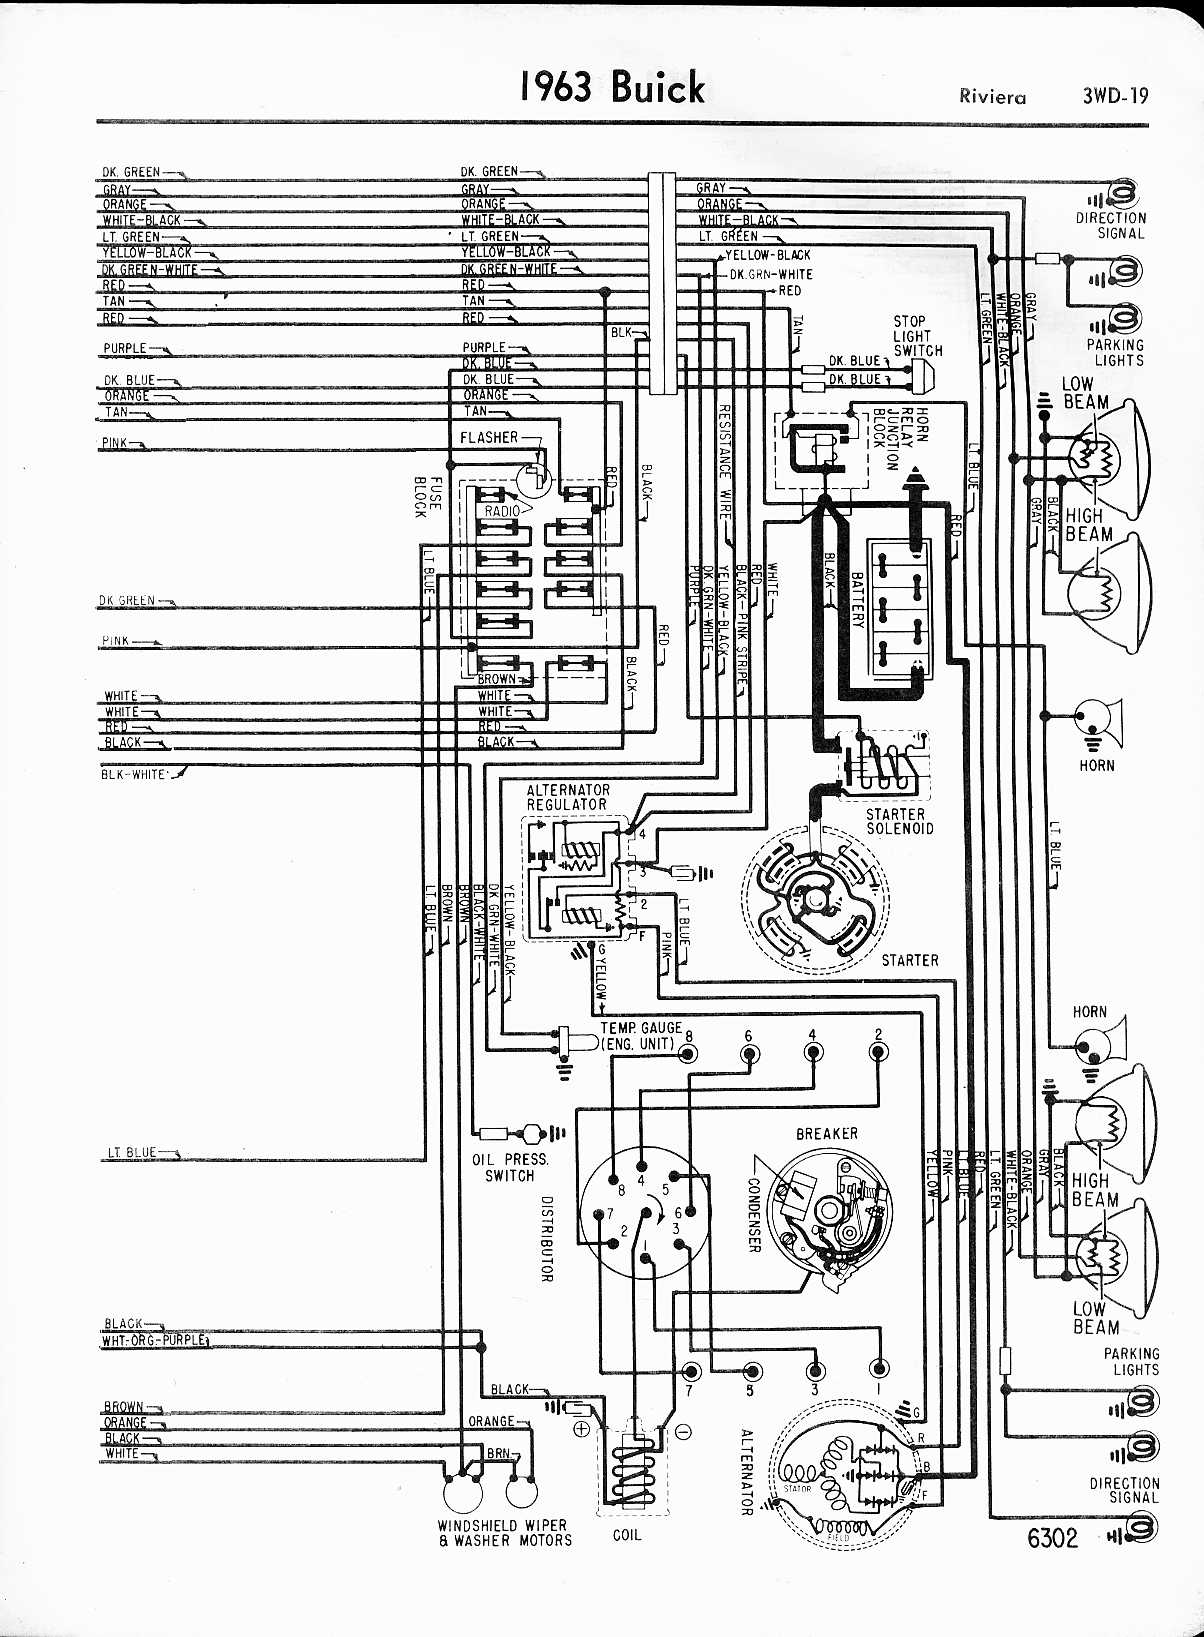 1985 plymouth voyager wiring diagram